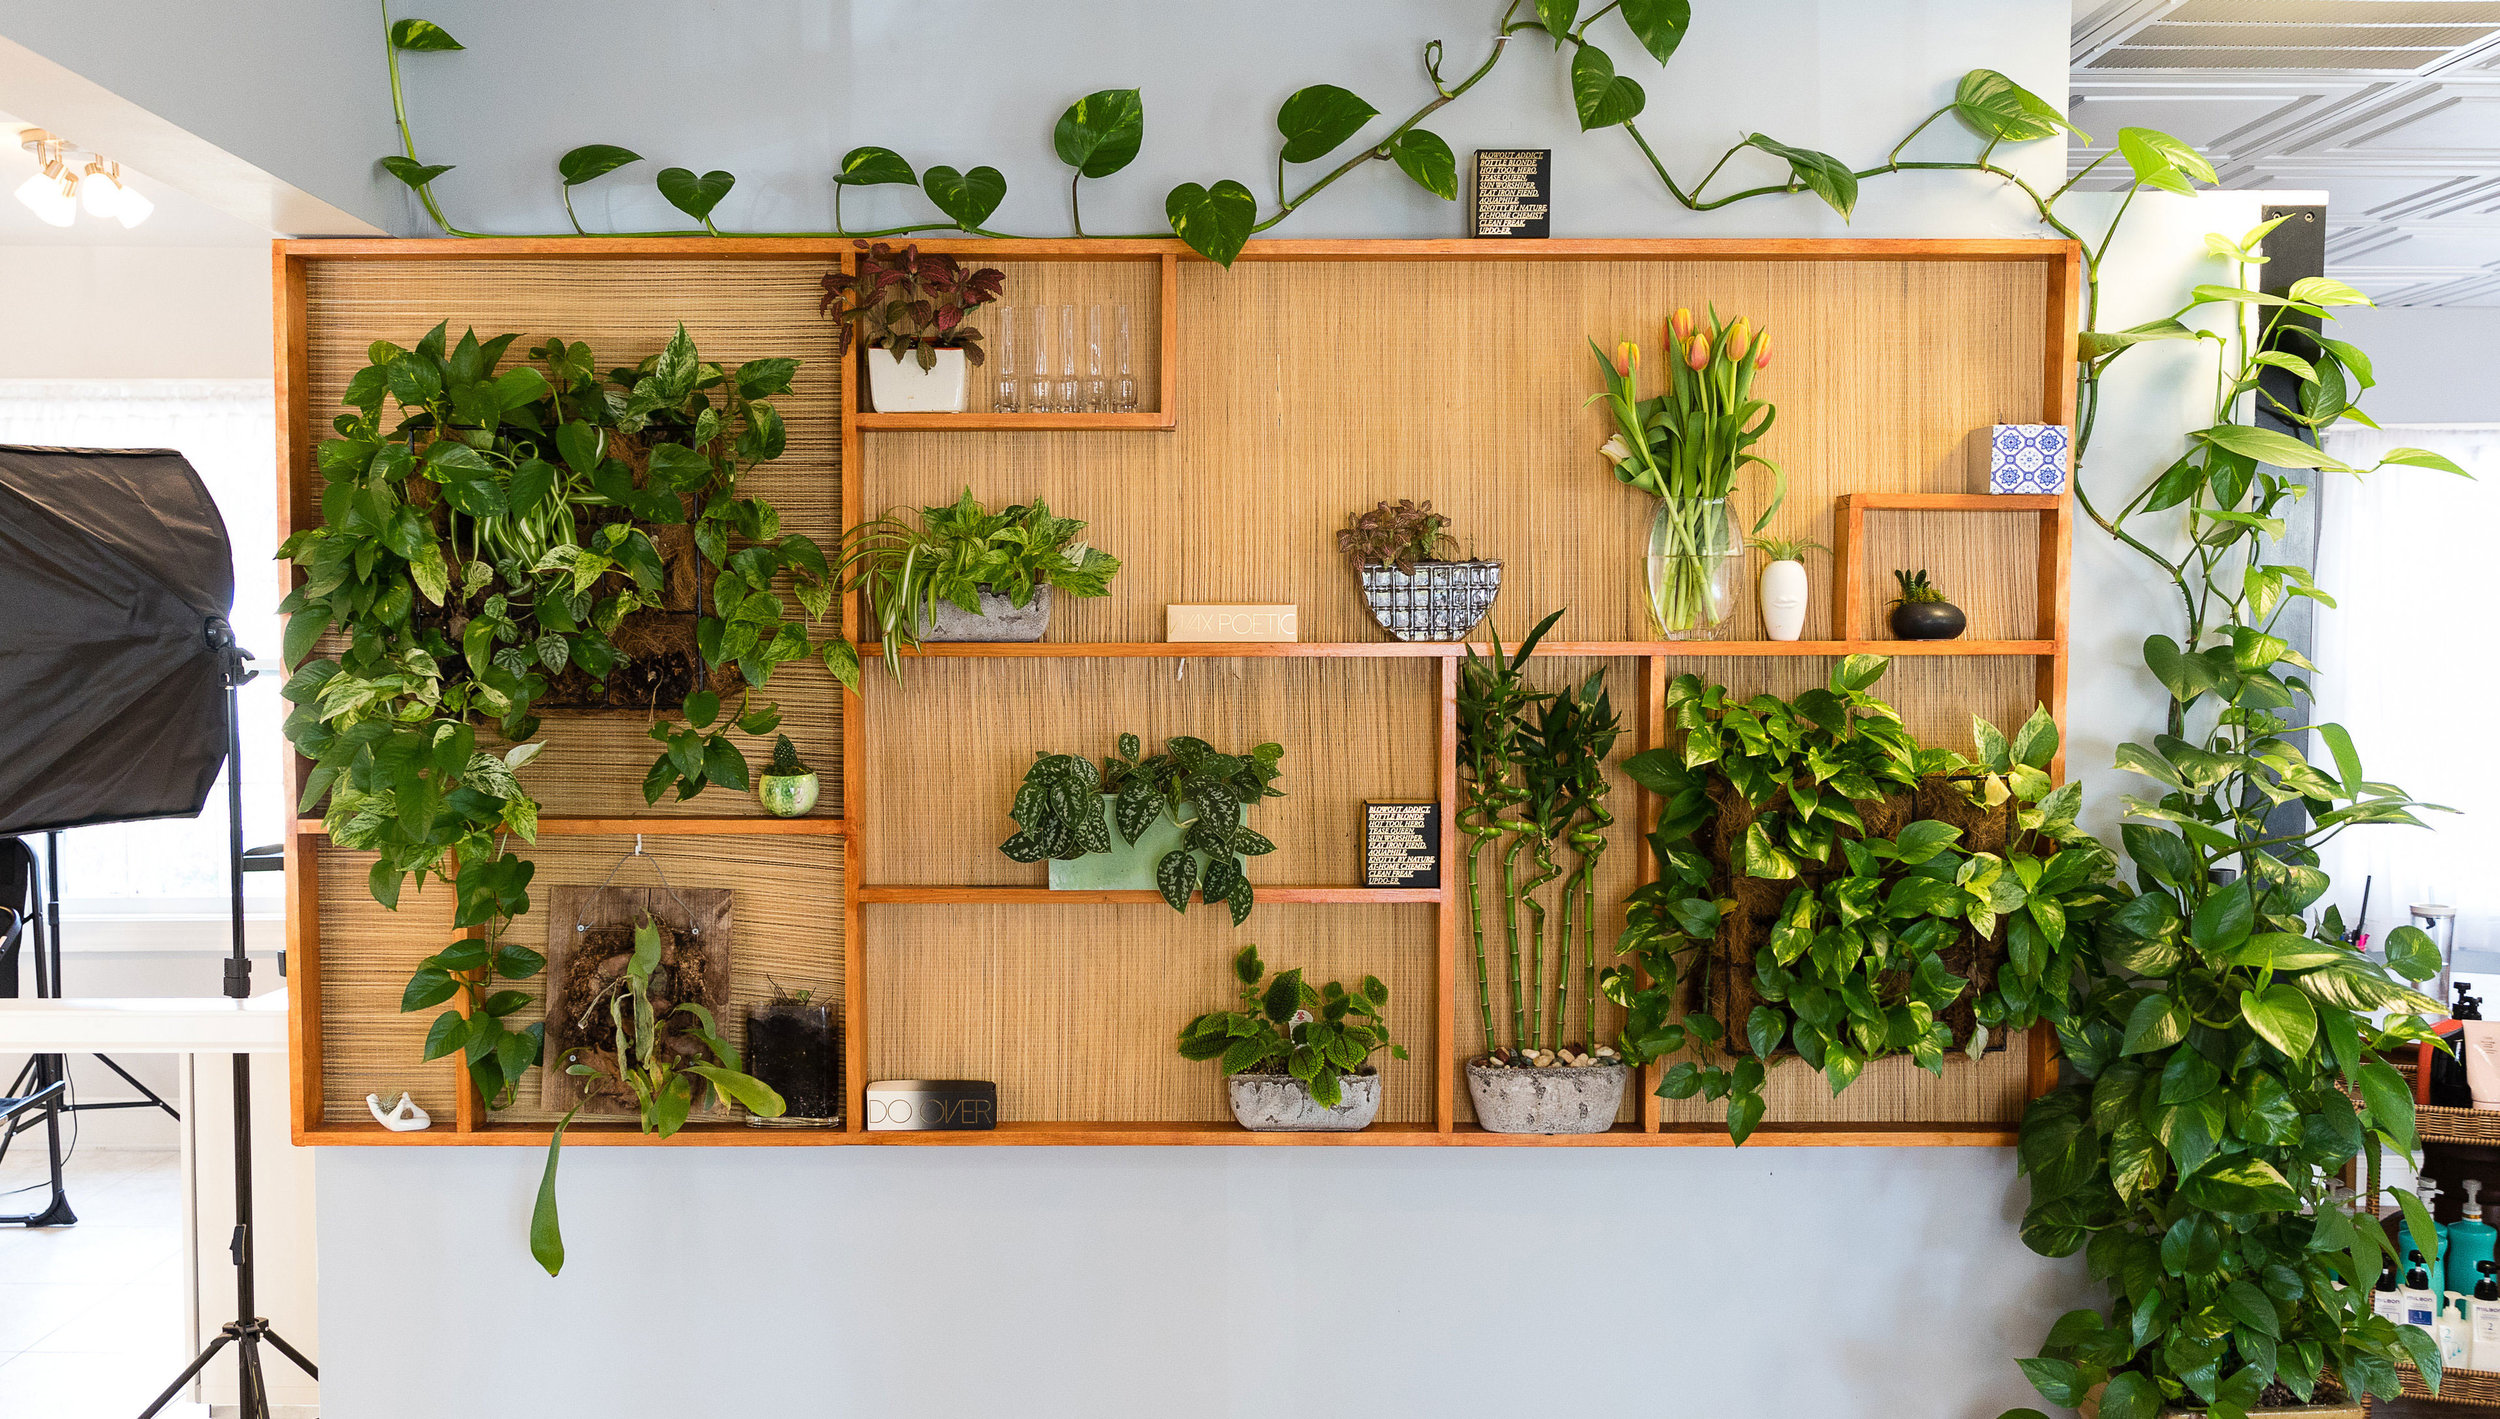 vine-wall-and-shelves-final.jpg